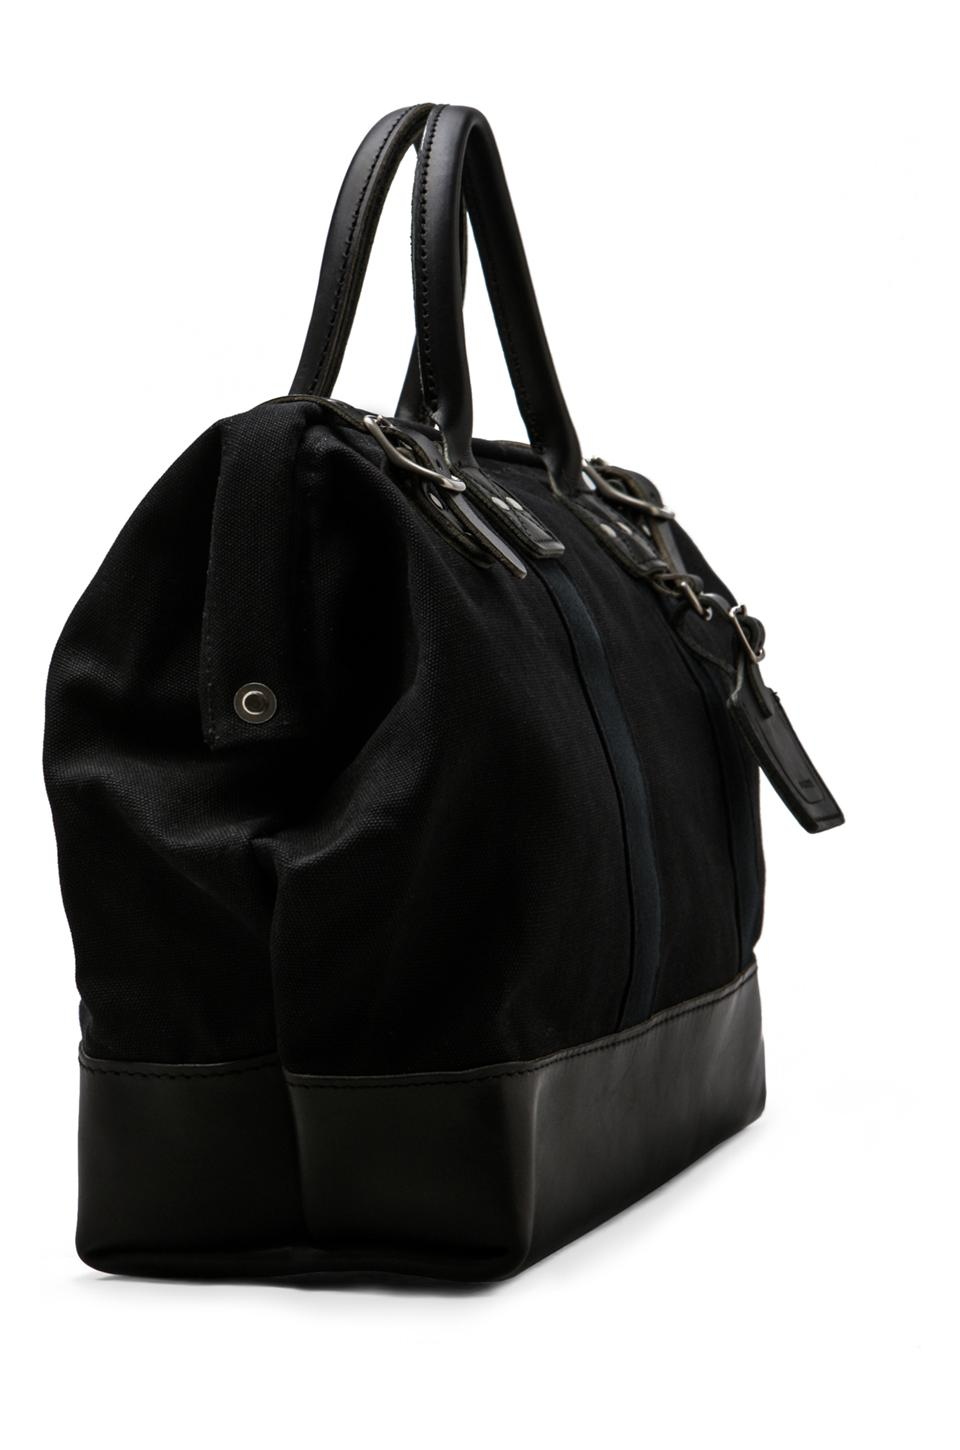 Billykirk No. 165 Medium Carryall in Black